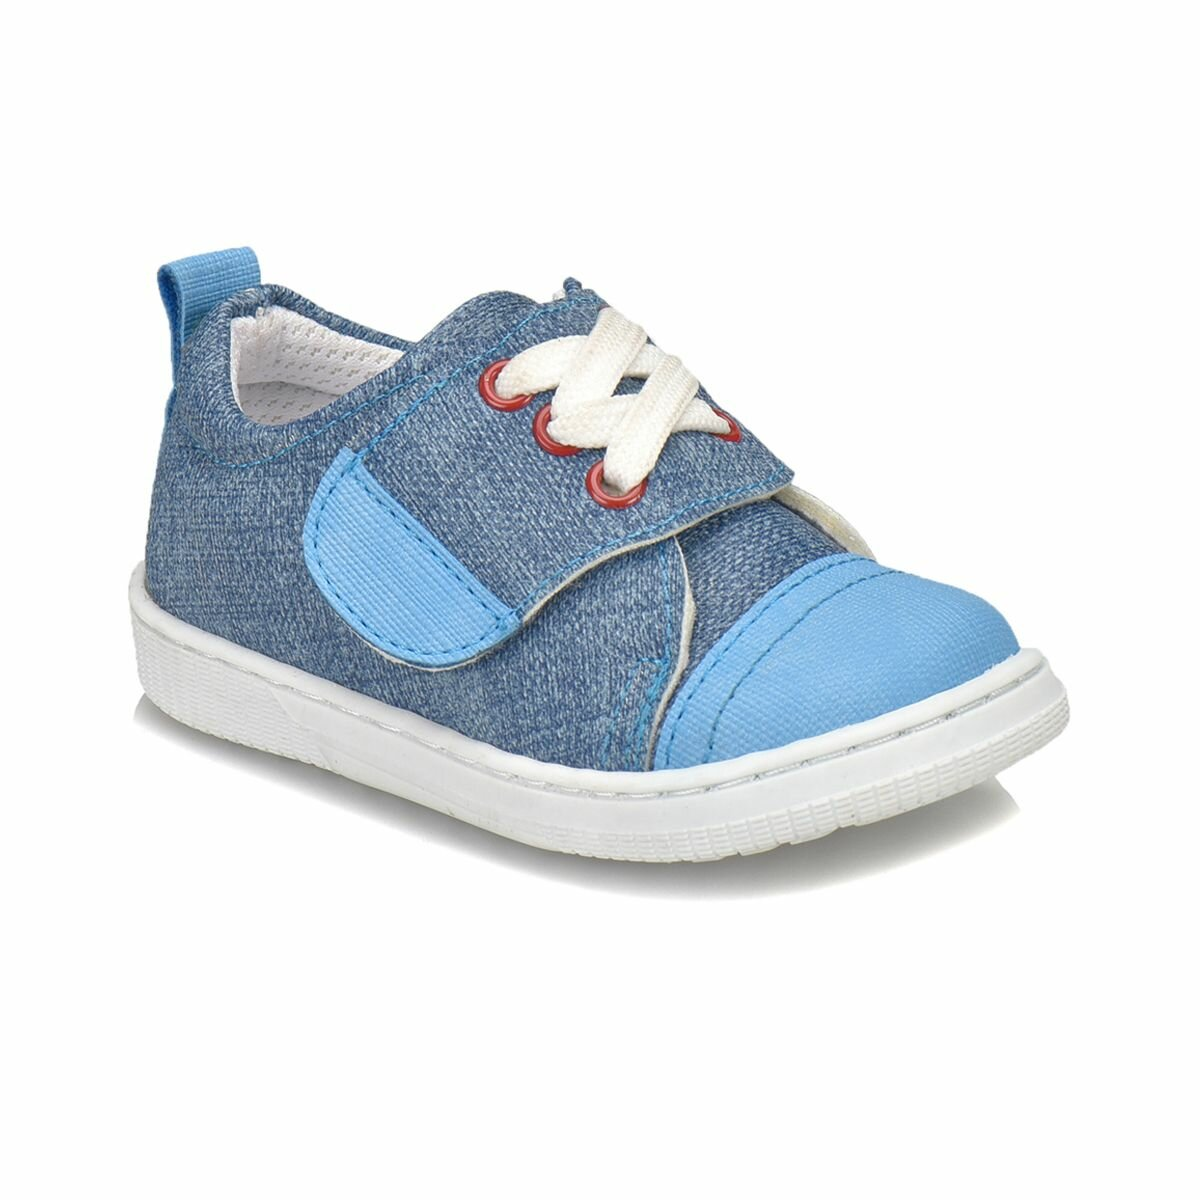 FLO BEYS Blue Male Child Sneaker Shoes KINETIX